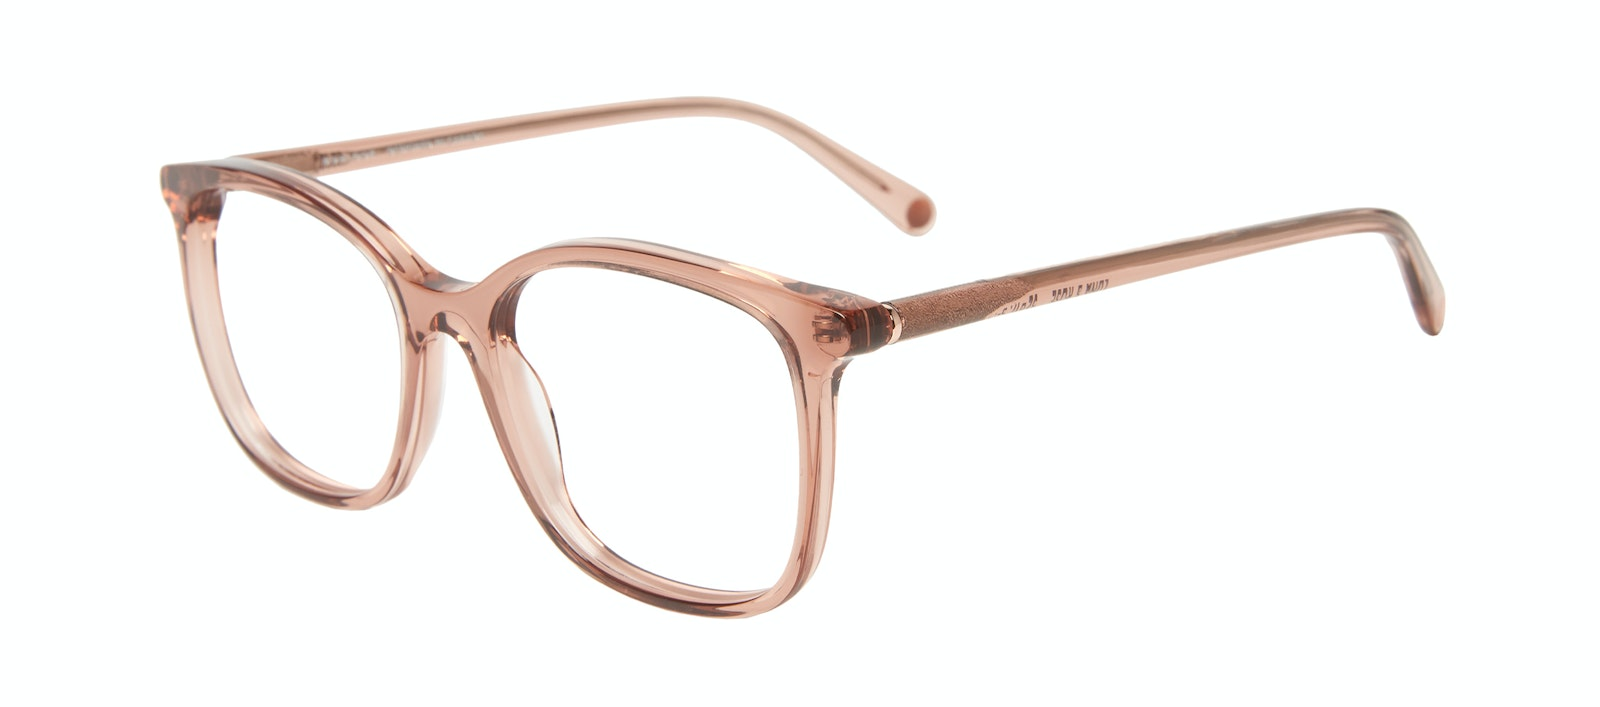 Affordable Fashion Glasses Square Eyeglasses Women Luna Rose Tilt